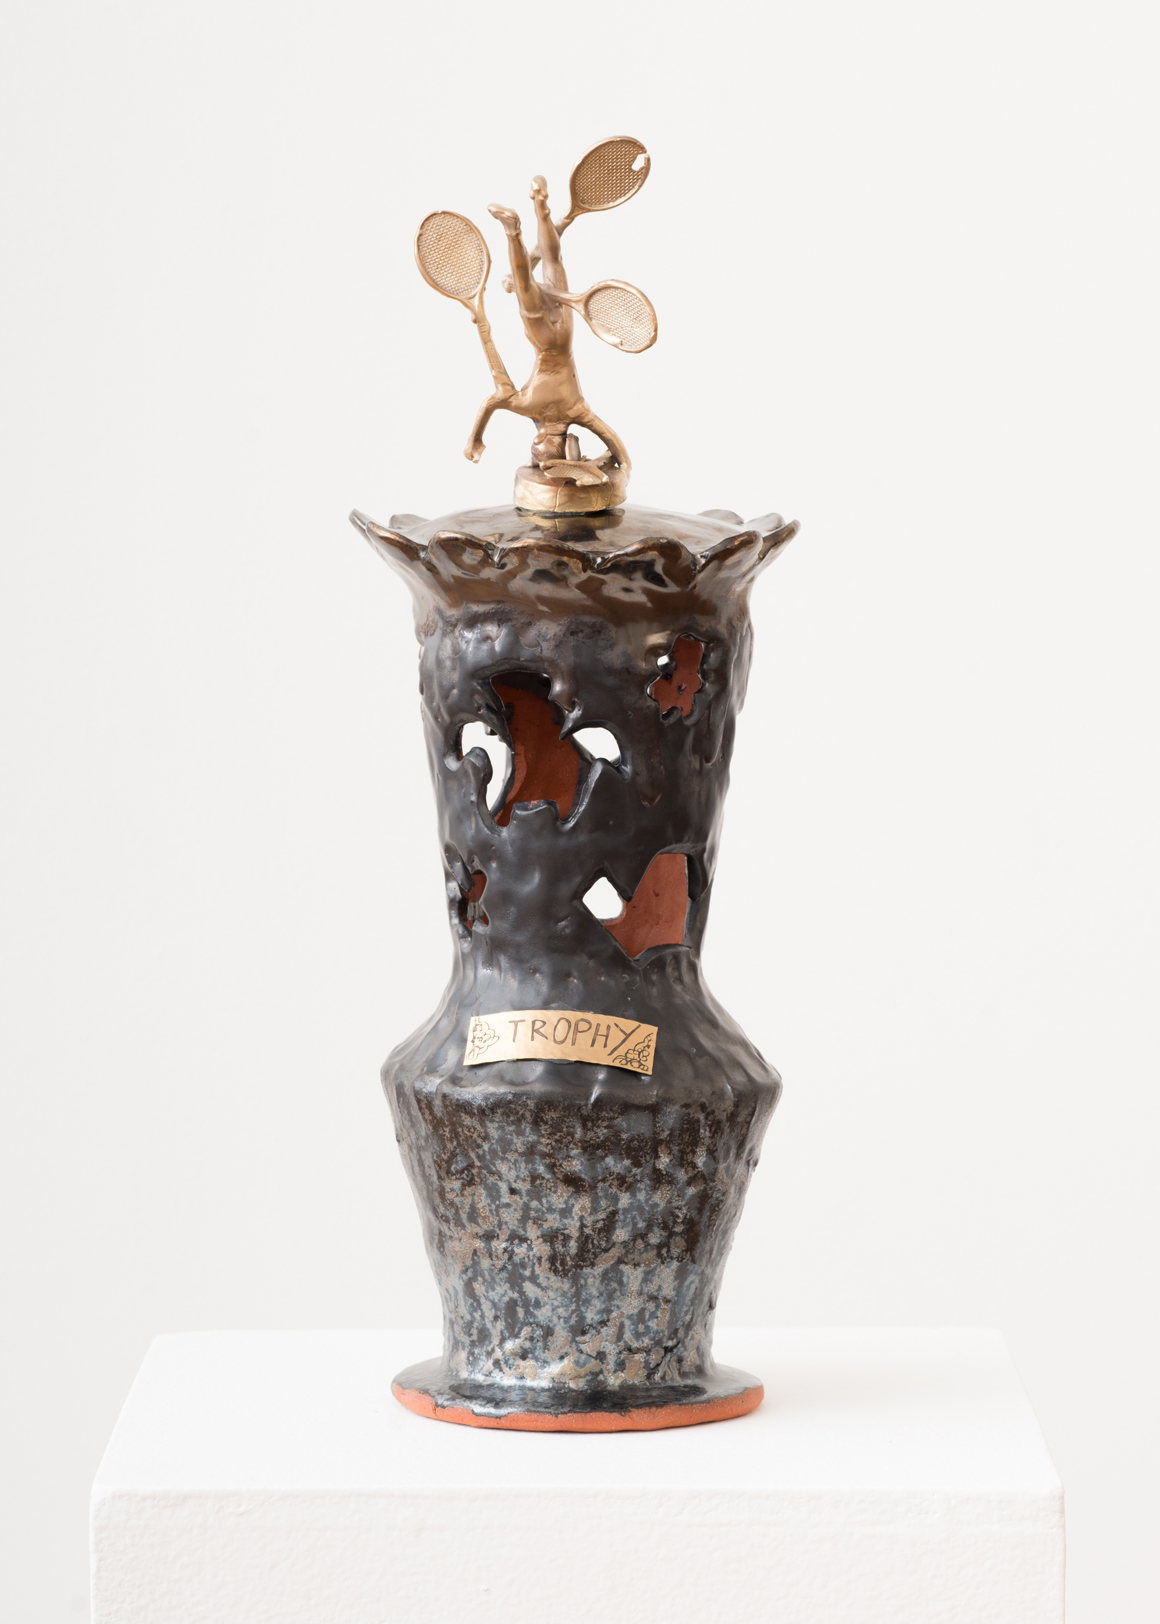 "<p><span class=""name"">Stephanie Kantor</span><br><em>Trophy (trophy)</em><span class='media'>Earthenware, glaze, bronze, brass</span>17 x 6 x 6 in (43.2 x 15.2 x 15.2 cm)<br>2018<br><a class='inquire' href='mailto:info@gildargallery.com?subject=Artwork Inquiry SKAN0003&body=I am interested in finding out more about Trophy (trophy) by Stephanie Kantor'>Inquire</a></p>"